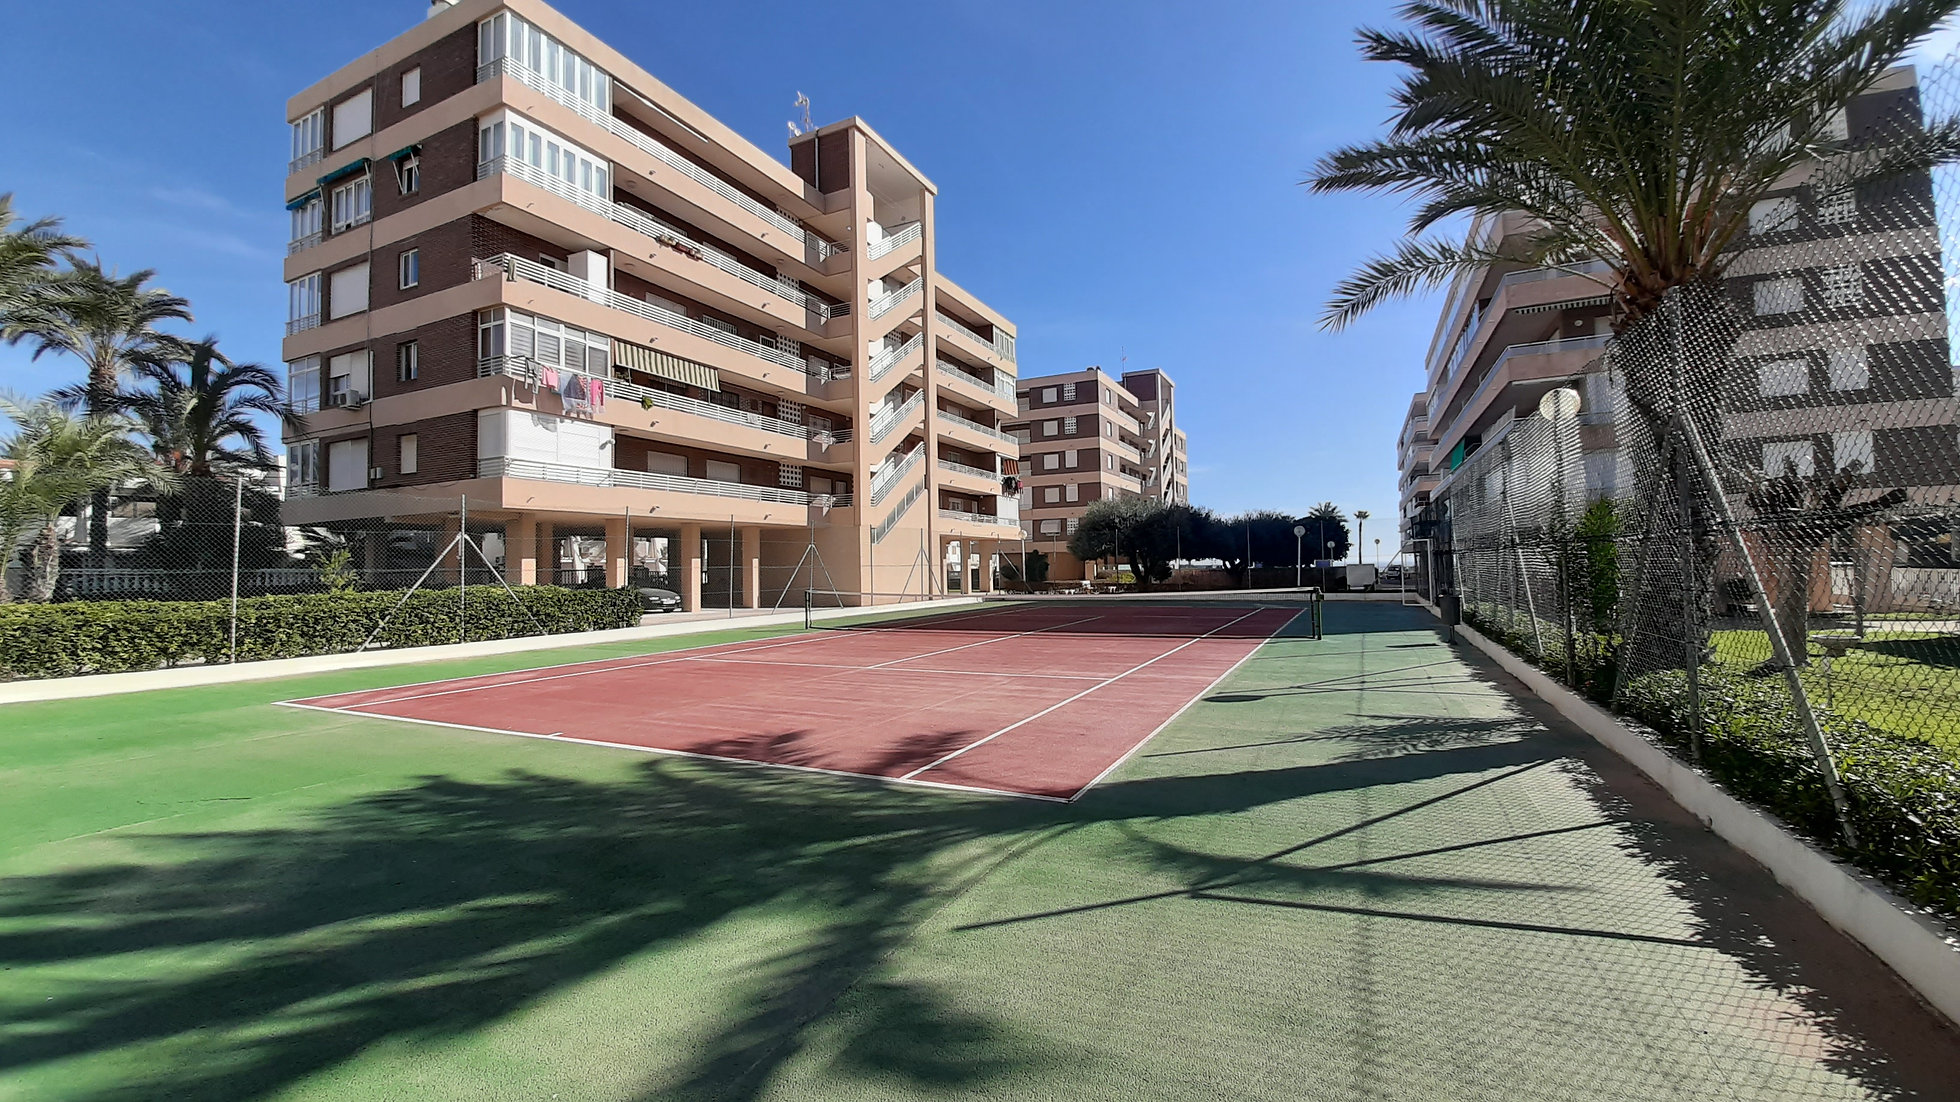 3 Bed Apartment for Long Term Rental in Torrevieja - 888LT ...